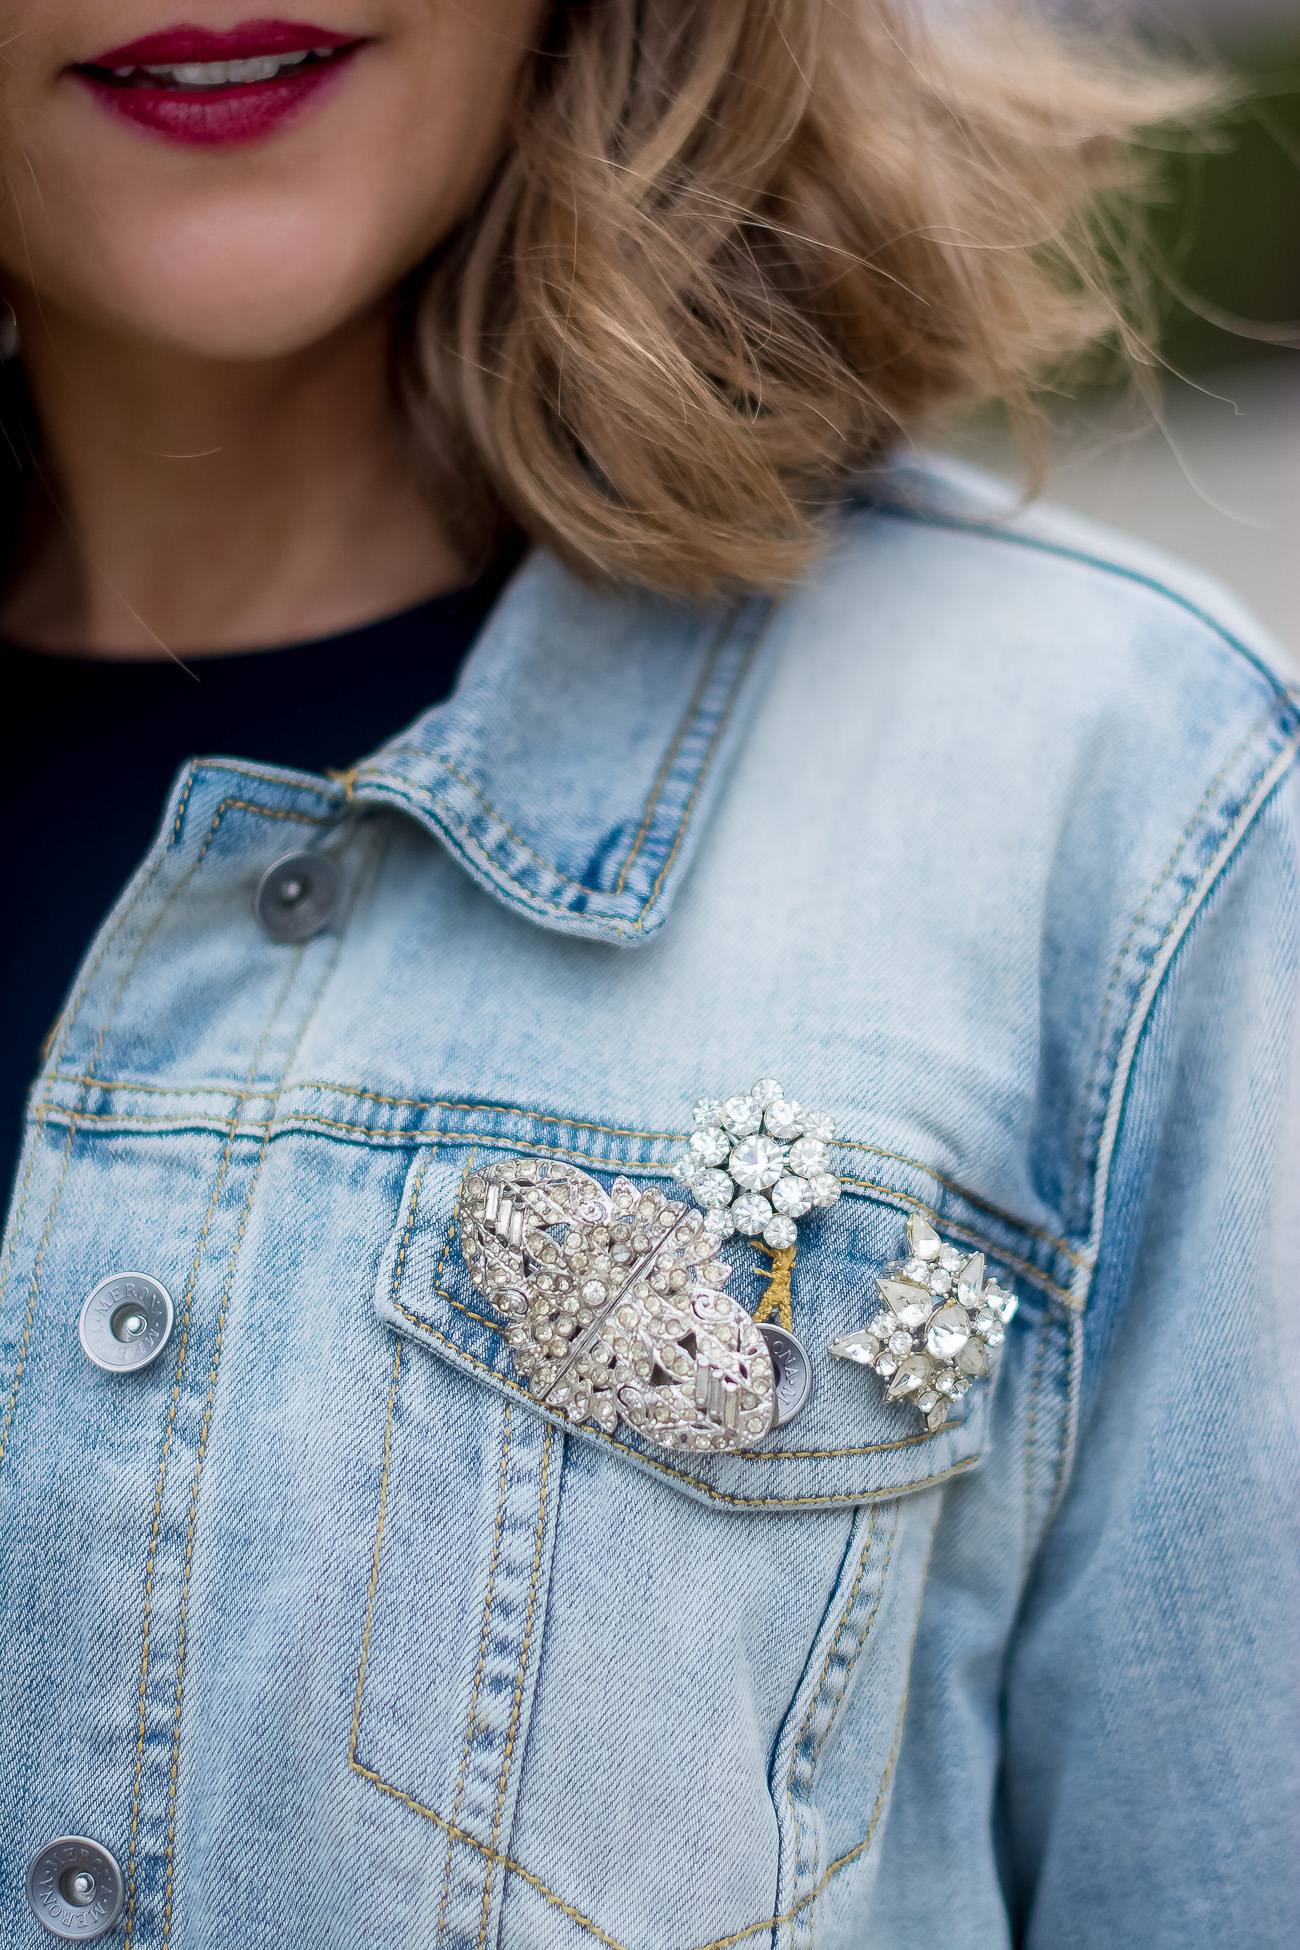 target-light-wash-denim-jacket-vintage-rhinestone-brooches-mirrored-aviators-vintage-meets-modern-outfit